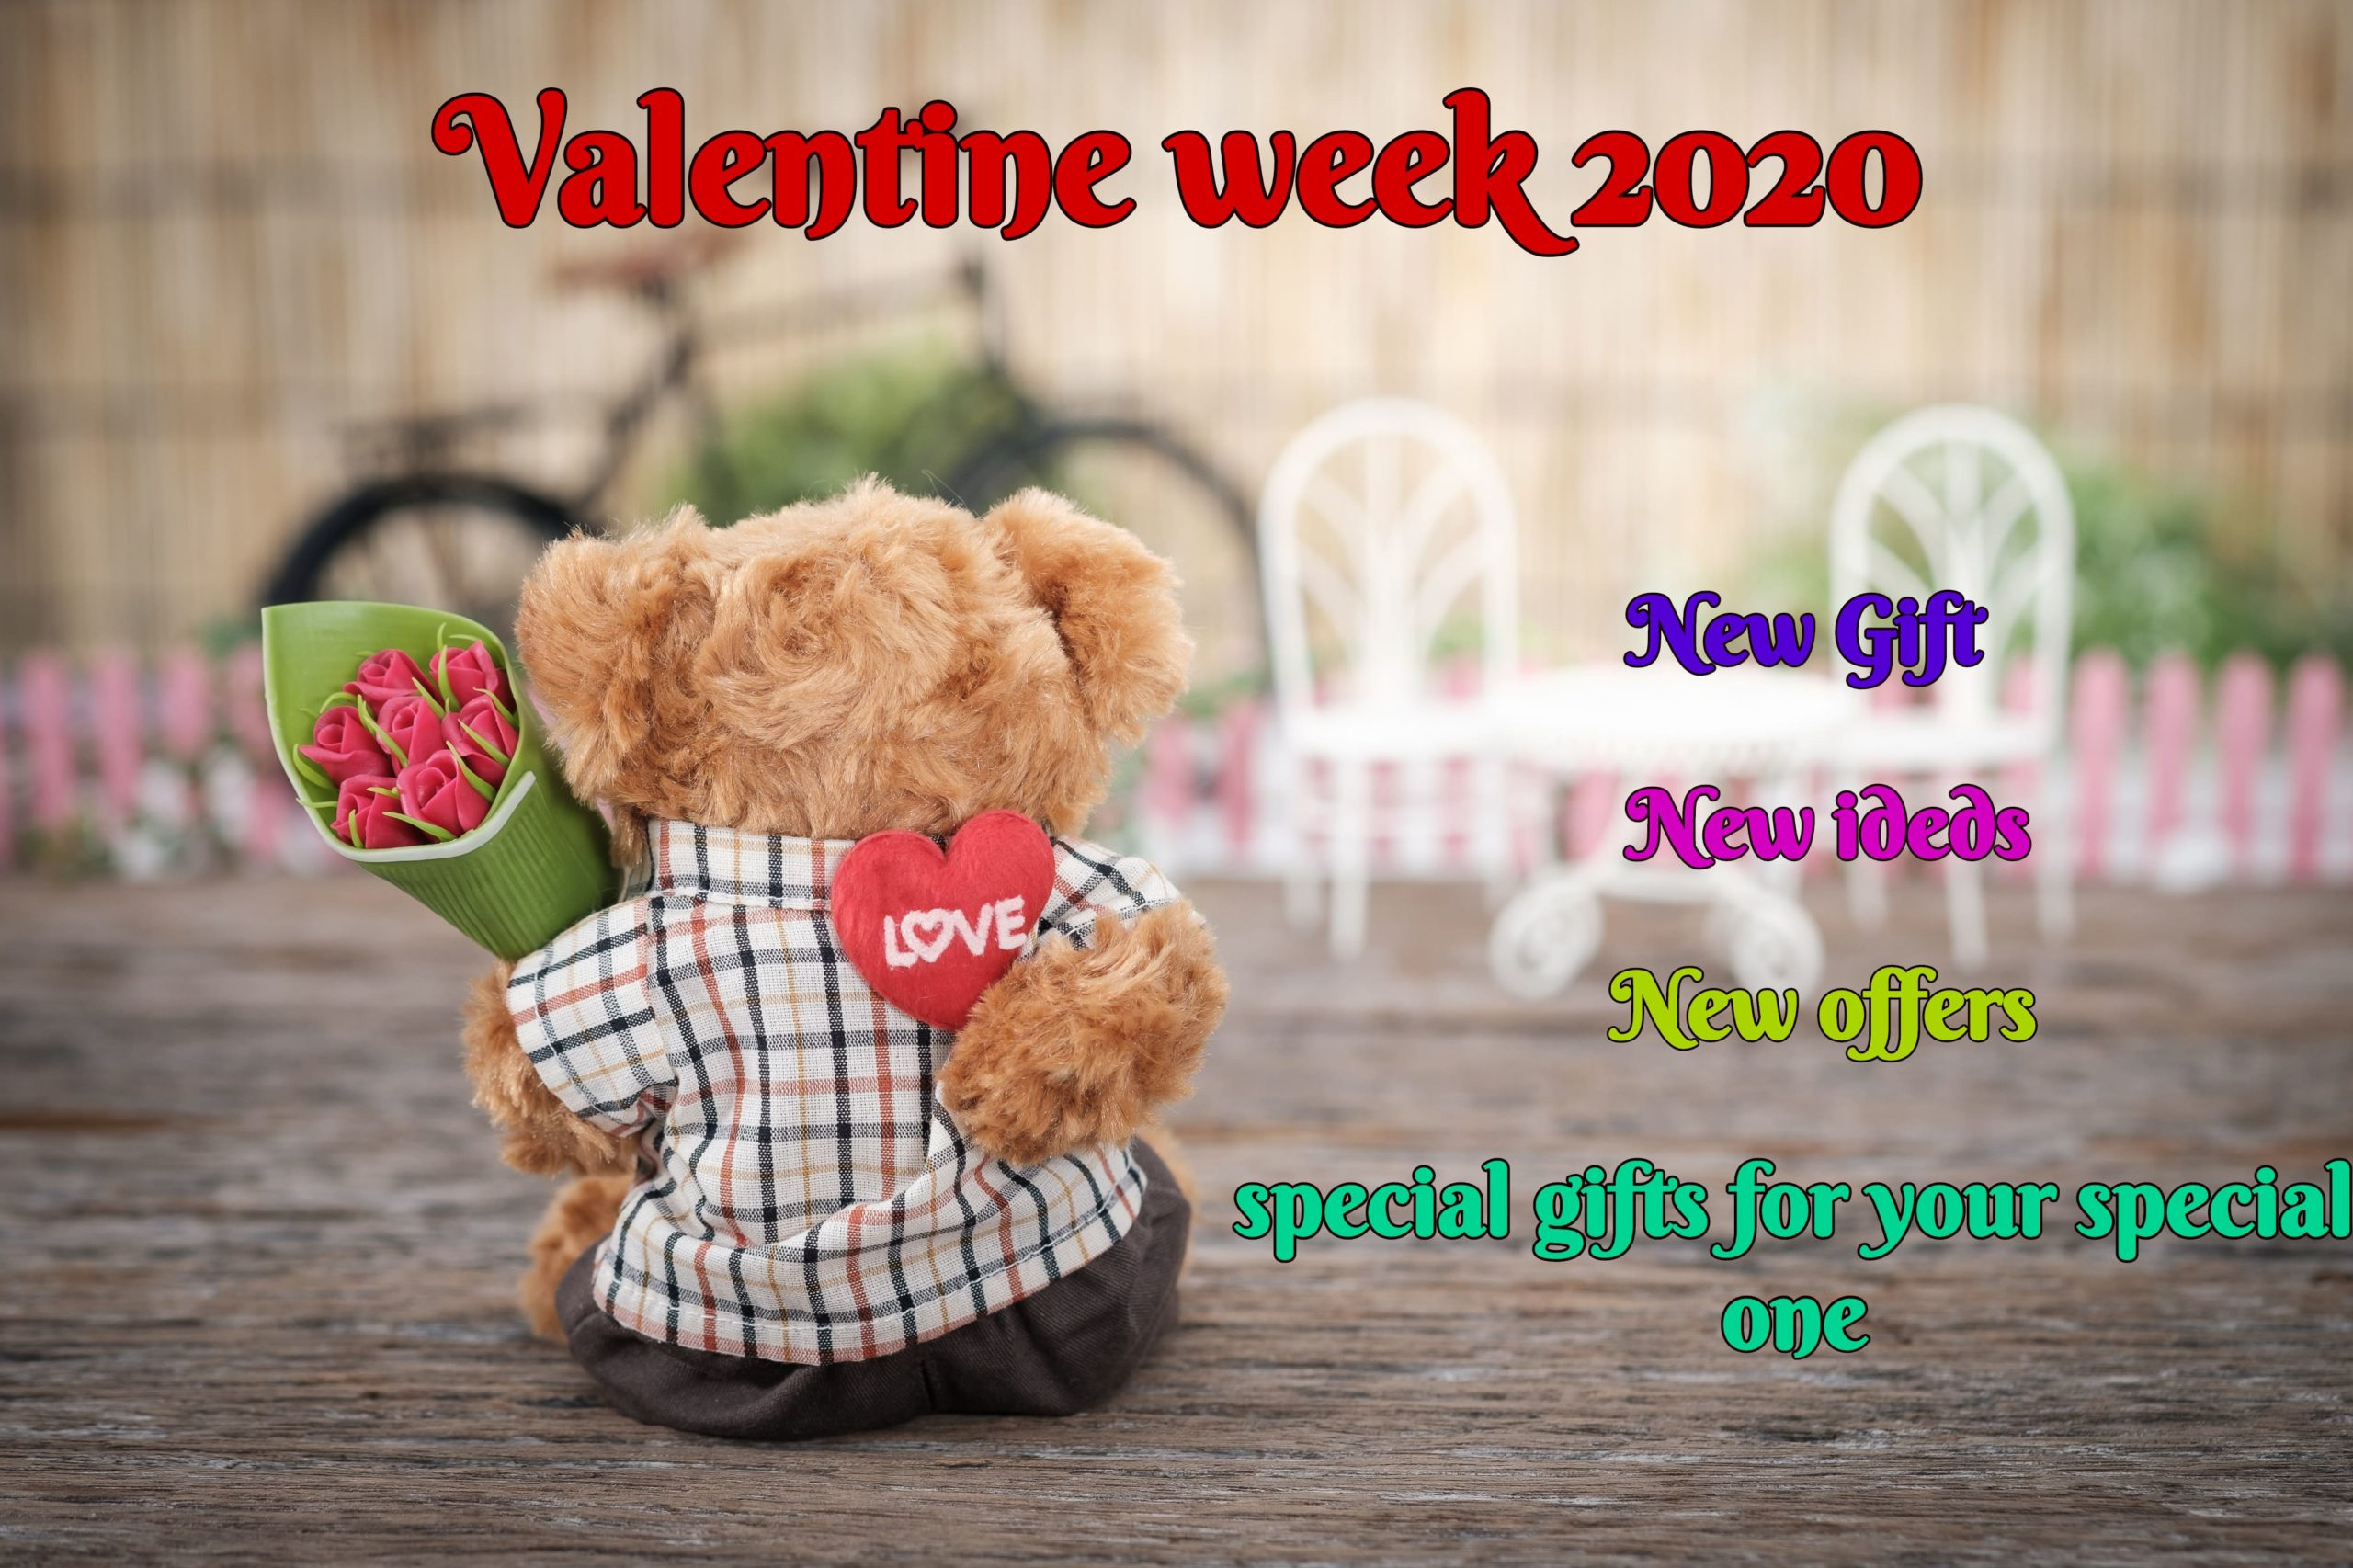 Valentine week 2020 | Best Gift valentine's week